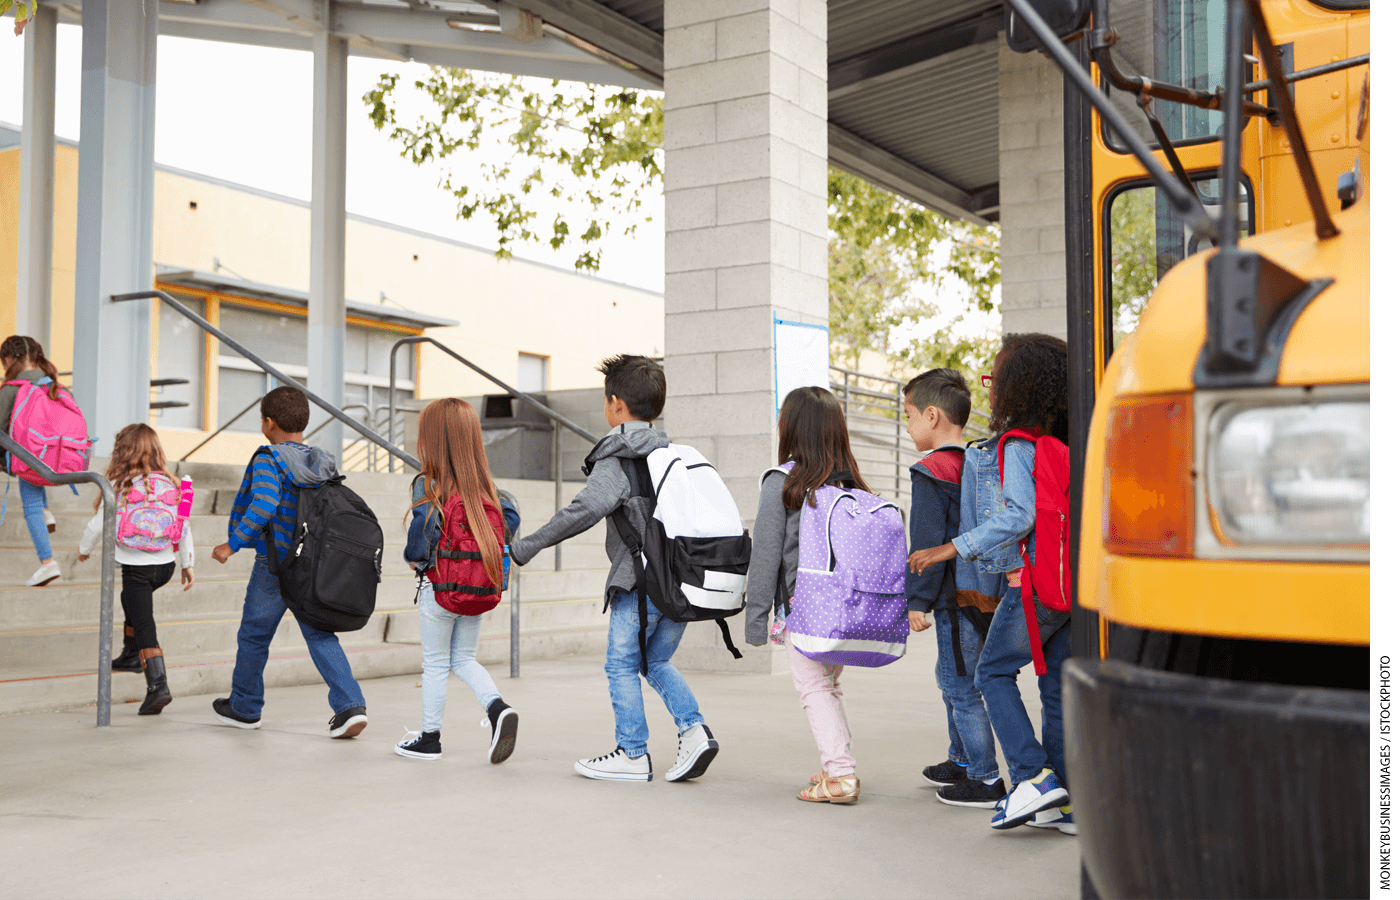 Students file off a bus and walk into a school